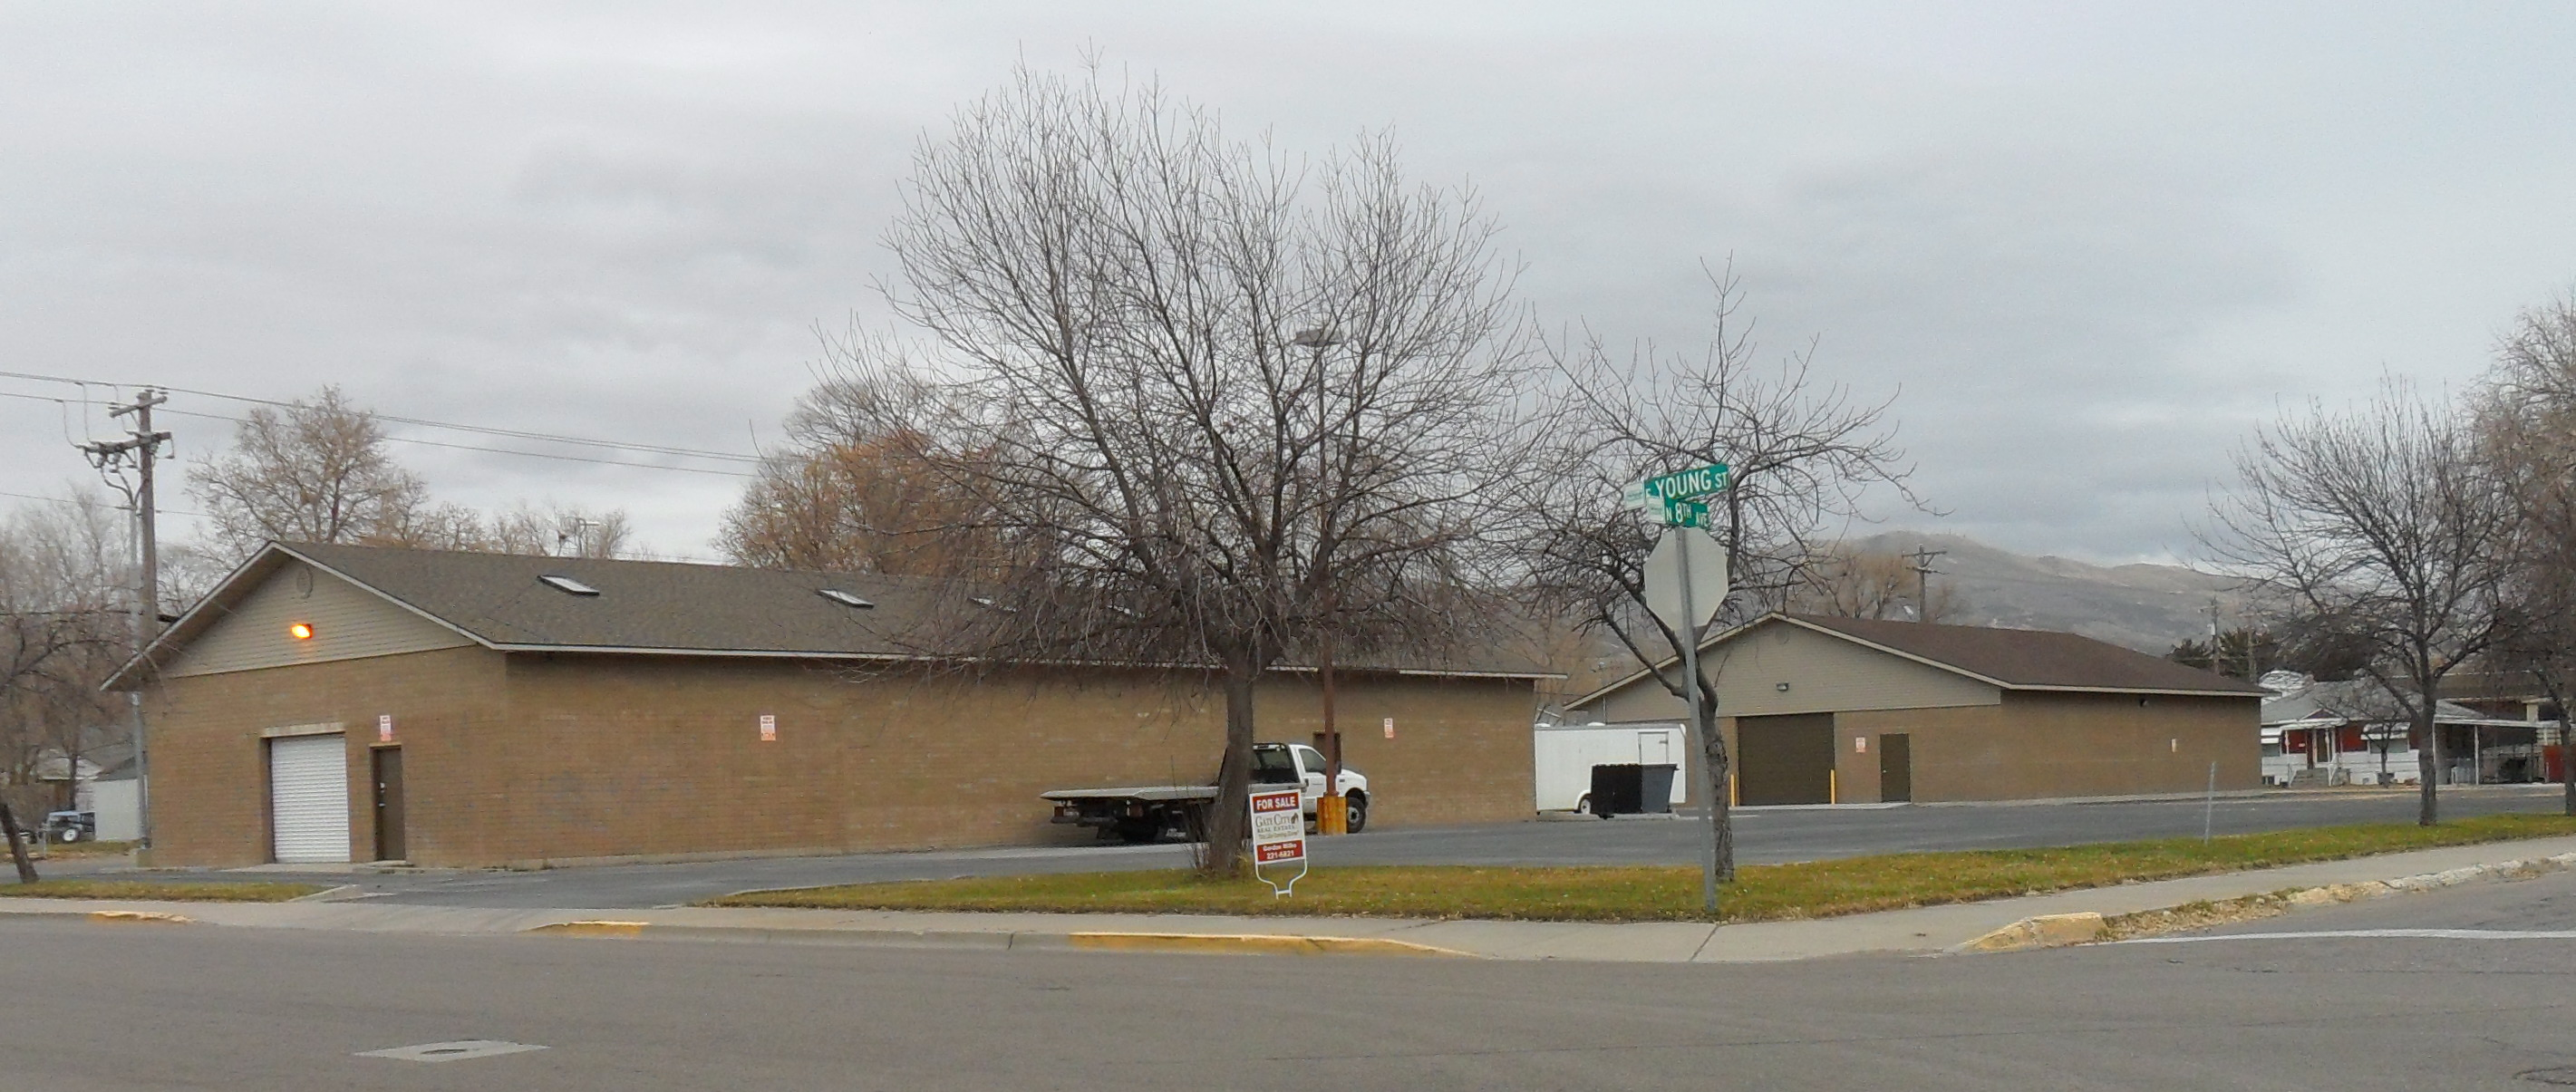 Also In Pocatello The Property That Acted As Construction Storage For Sunbelt Broadcasting A Previous Owner Of Nbc Affiliate Kpvi Channel 6 Was Abandoned